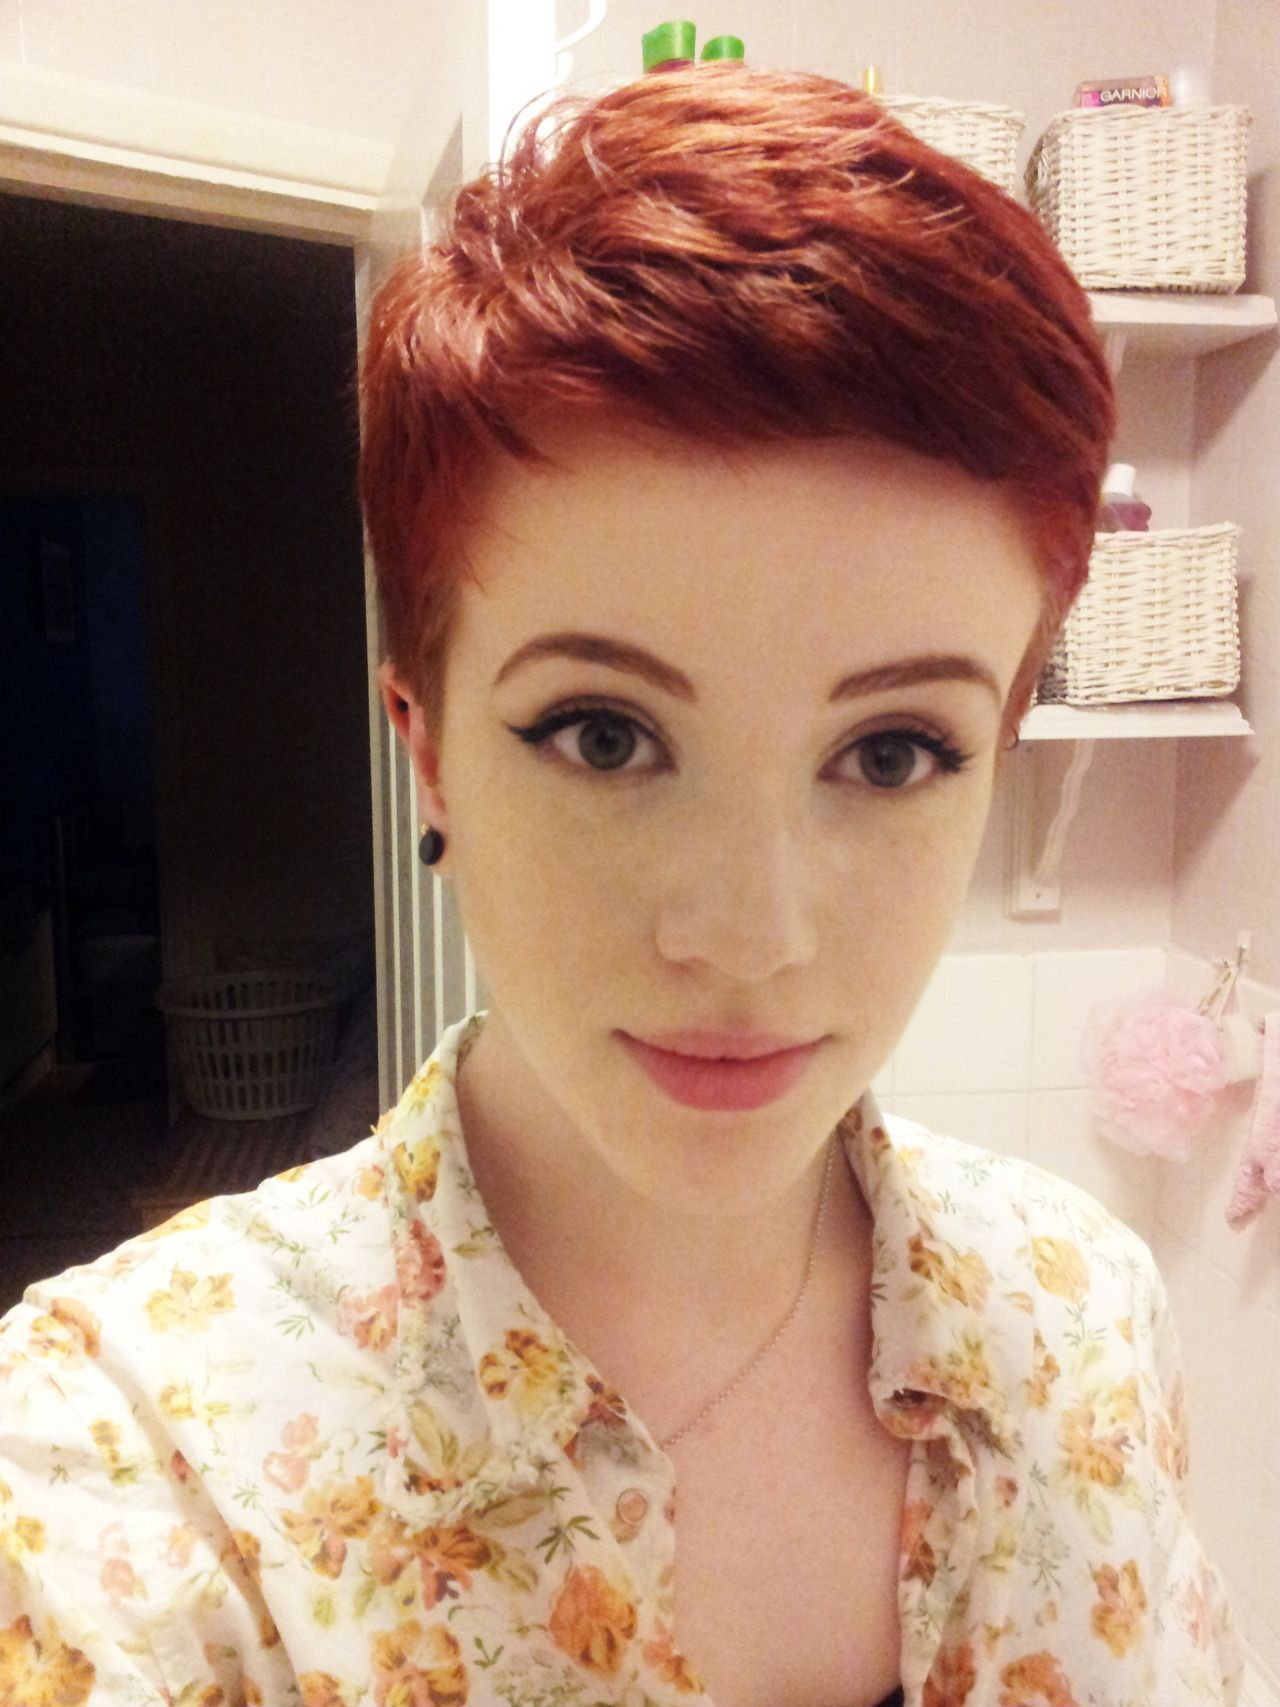 Buy Red tumblr cut pixie photo pictures trends